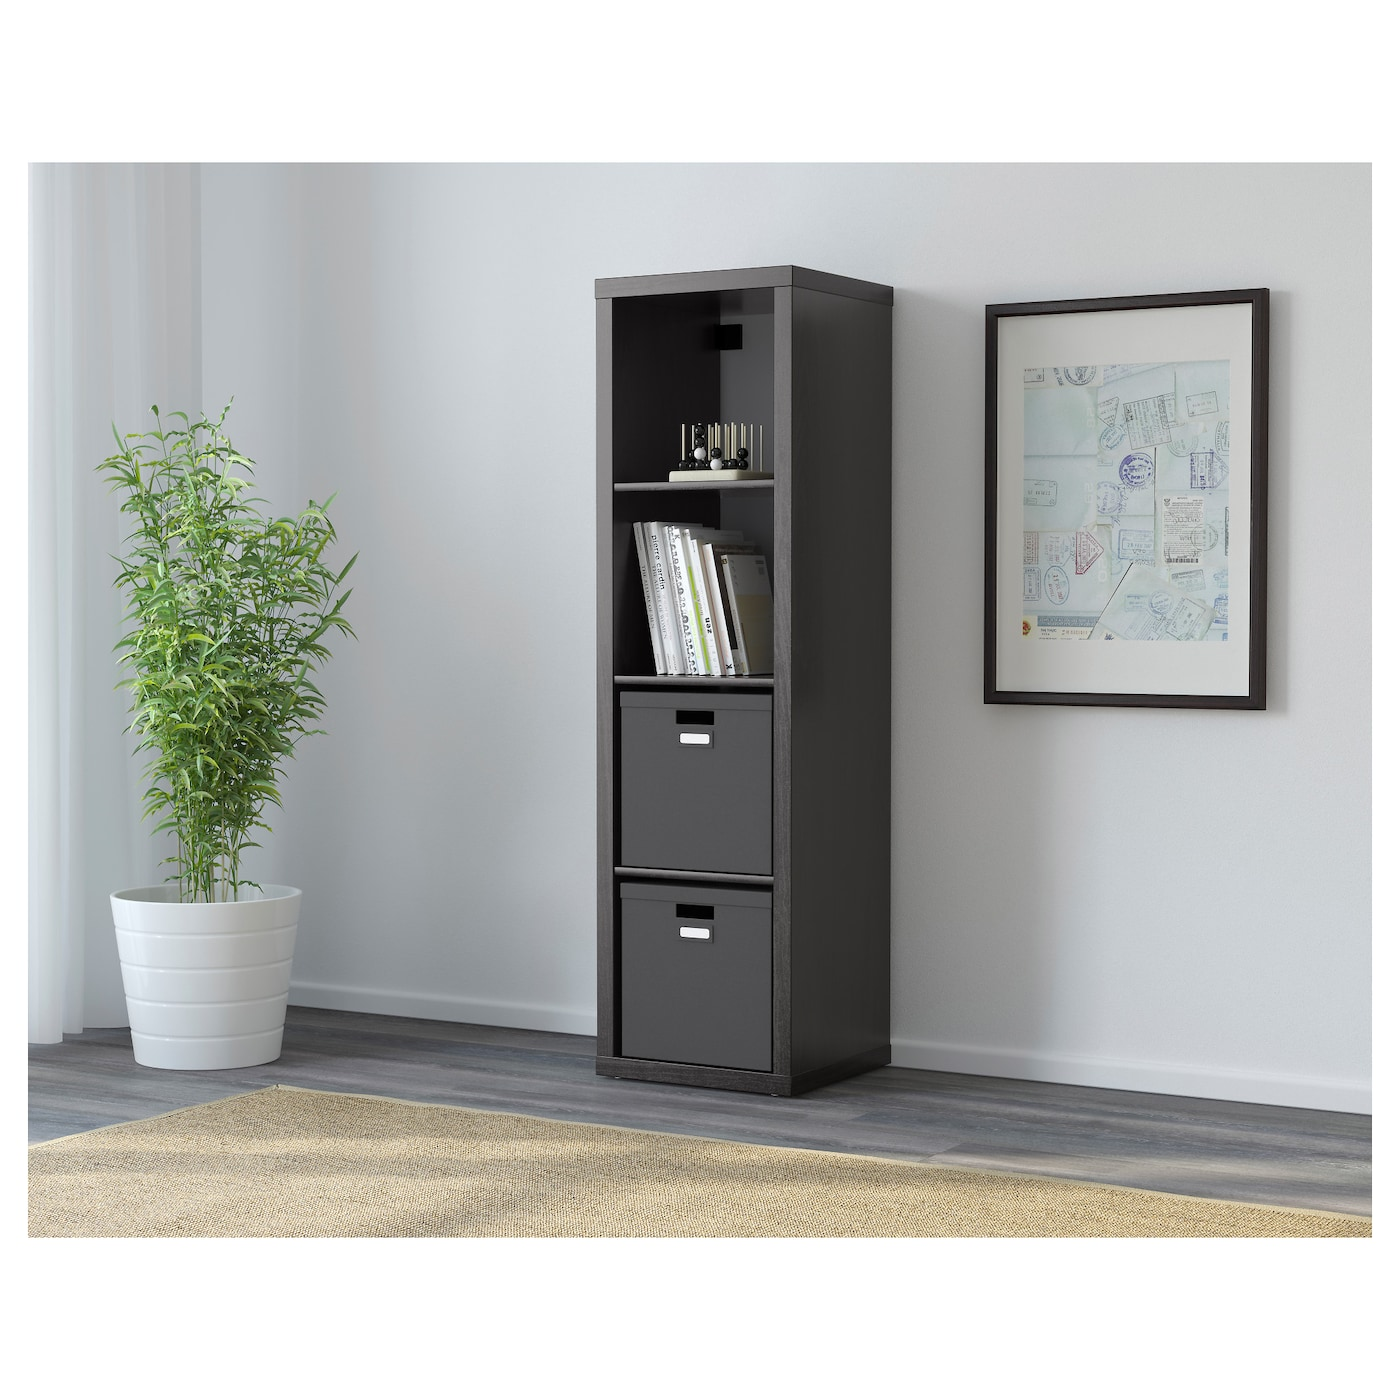 kallax shelving unit black brown 42 x 147 cm ikea. Black Bedroom Furniture Sets. Home Design Ideas